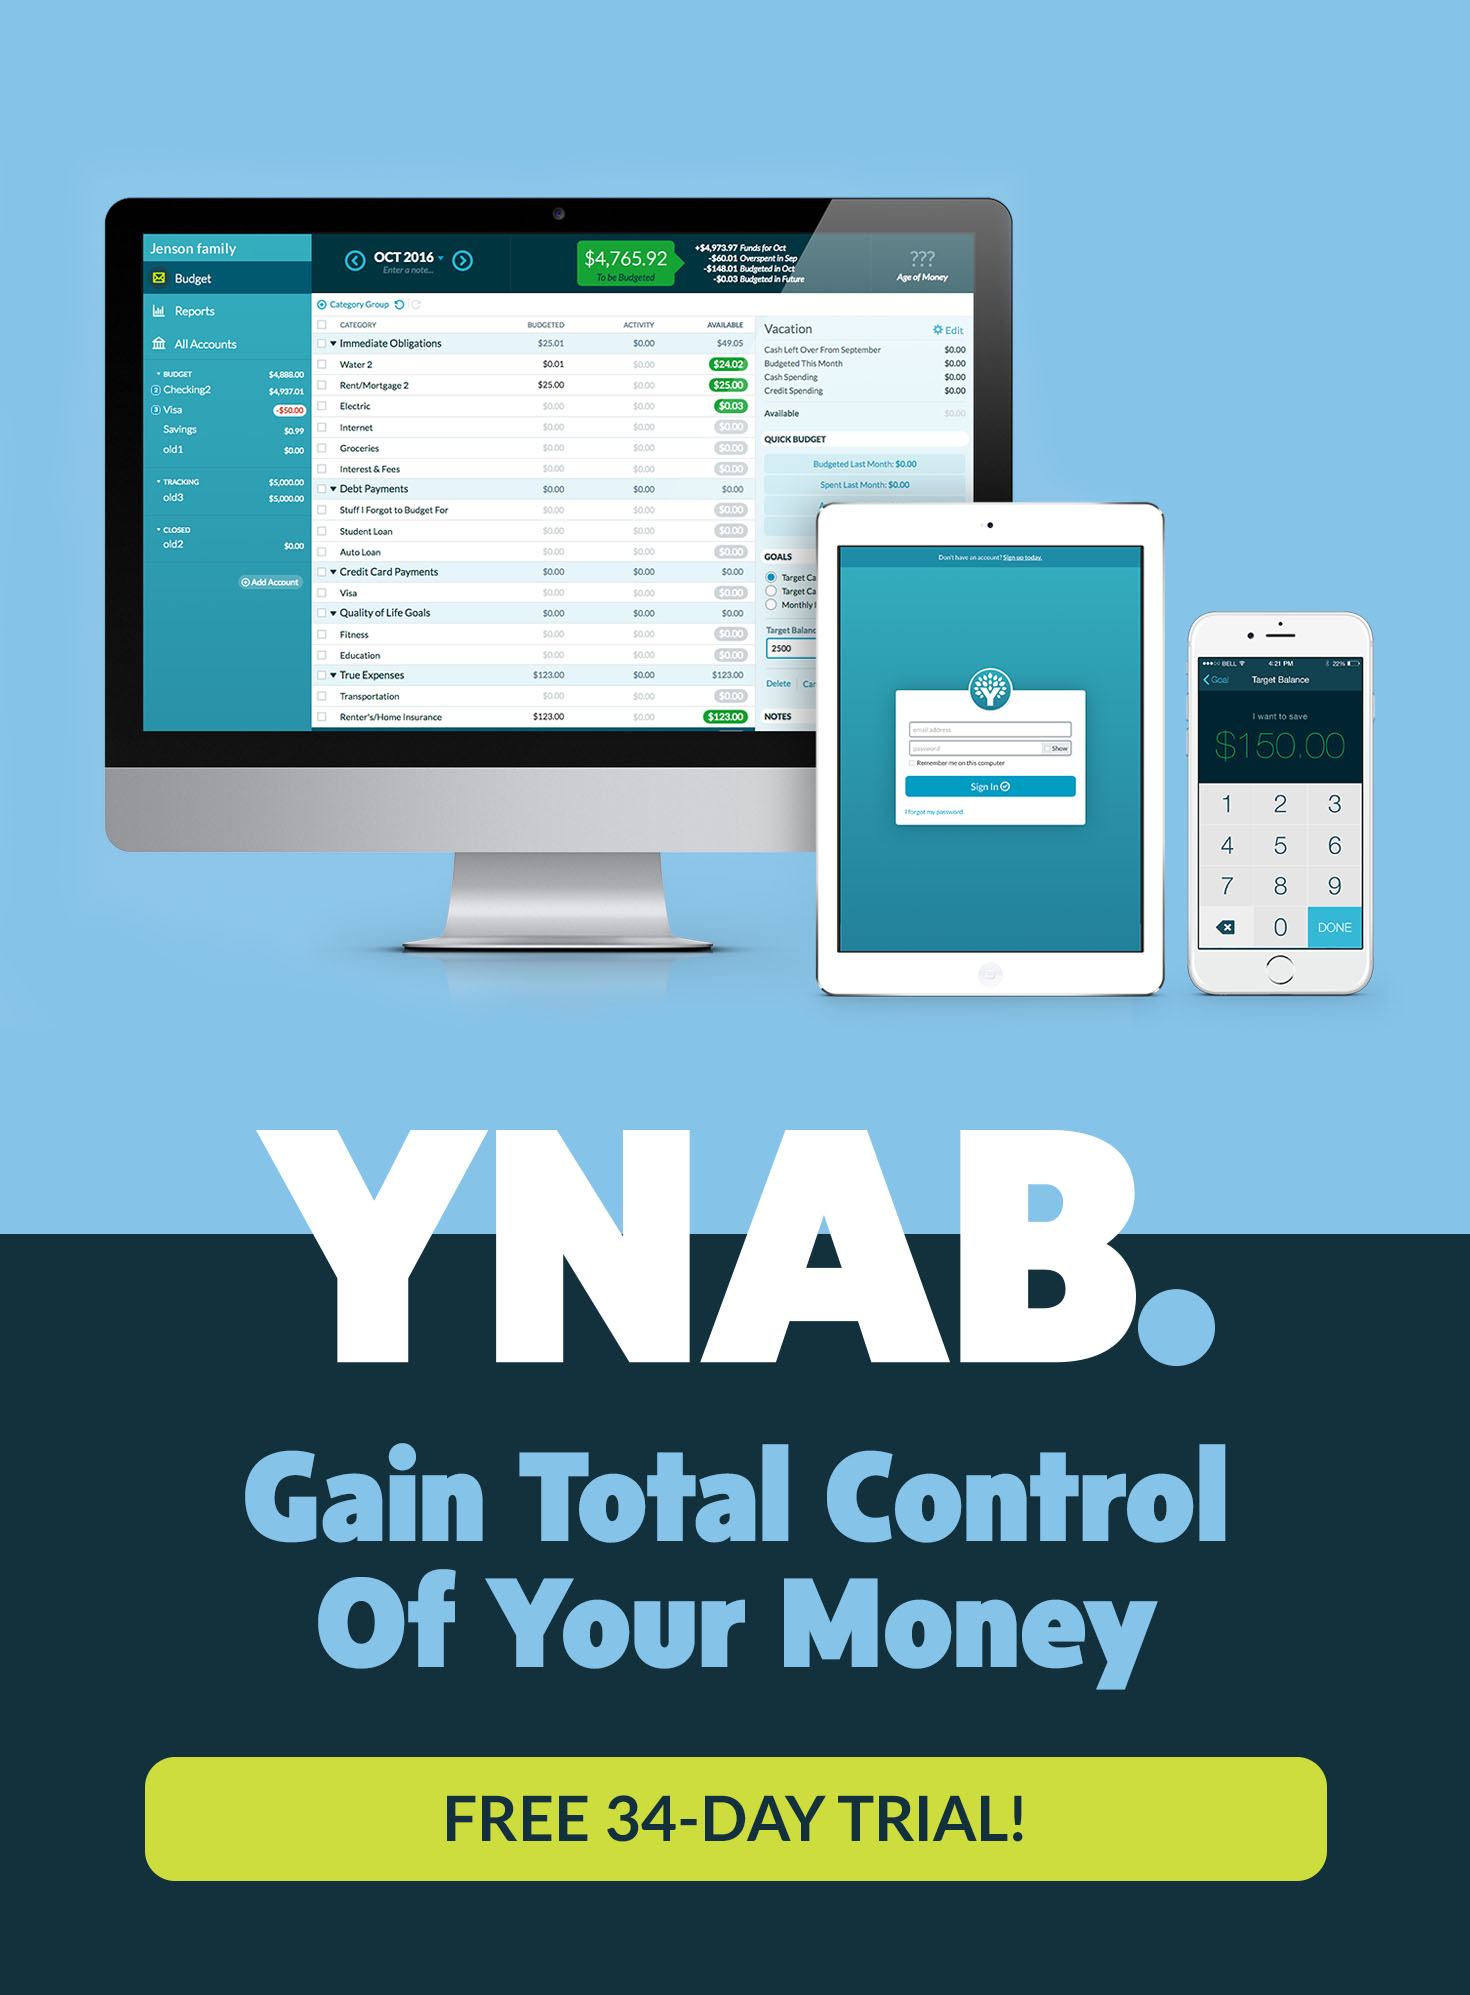 YNAB | Gain Total Control of Your Money. Stop living paycheck to paycheck, get out of debt, and save more money.